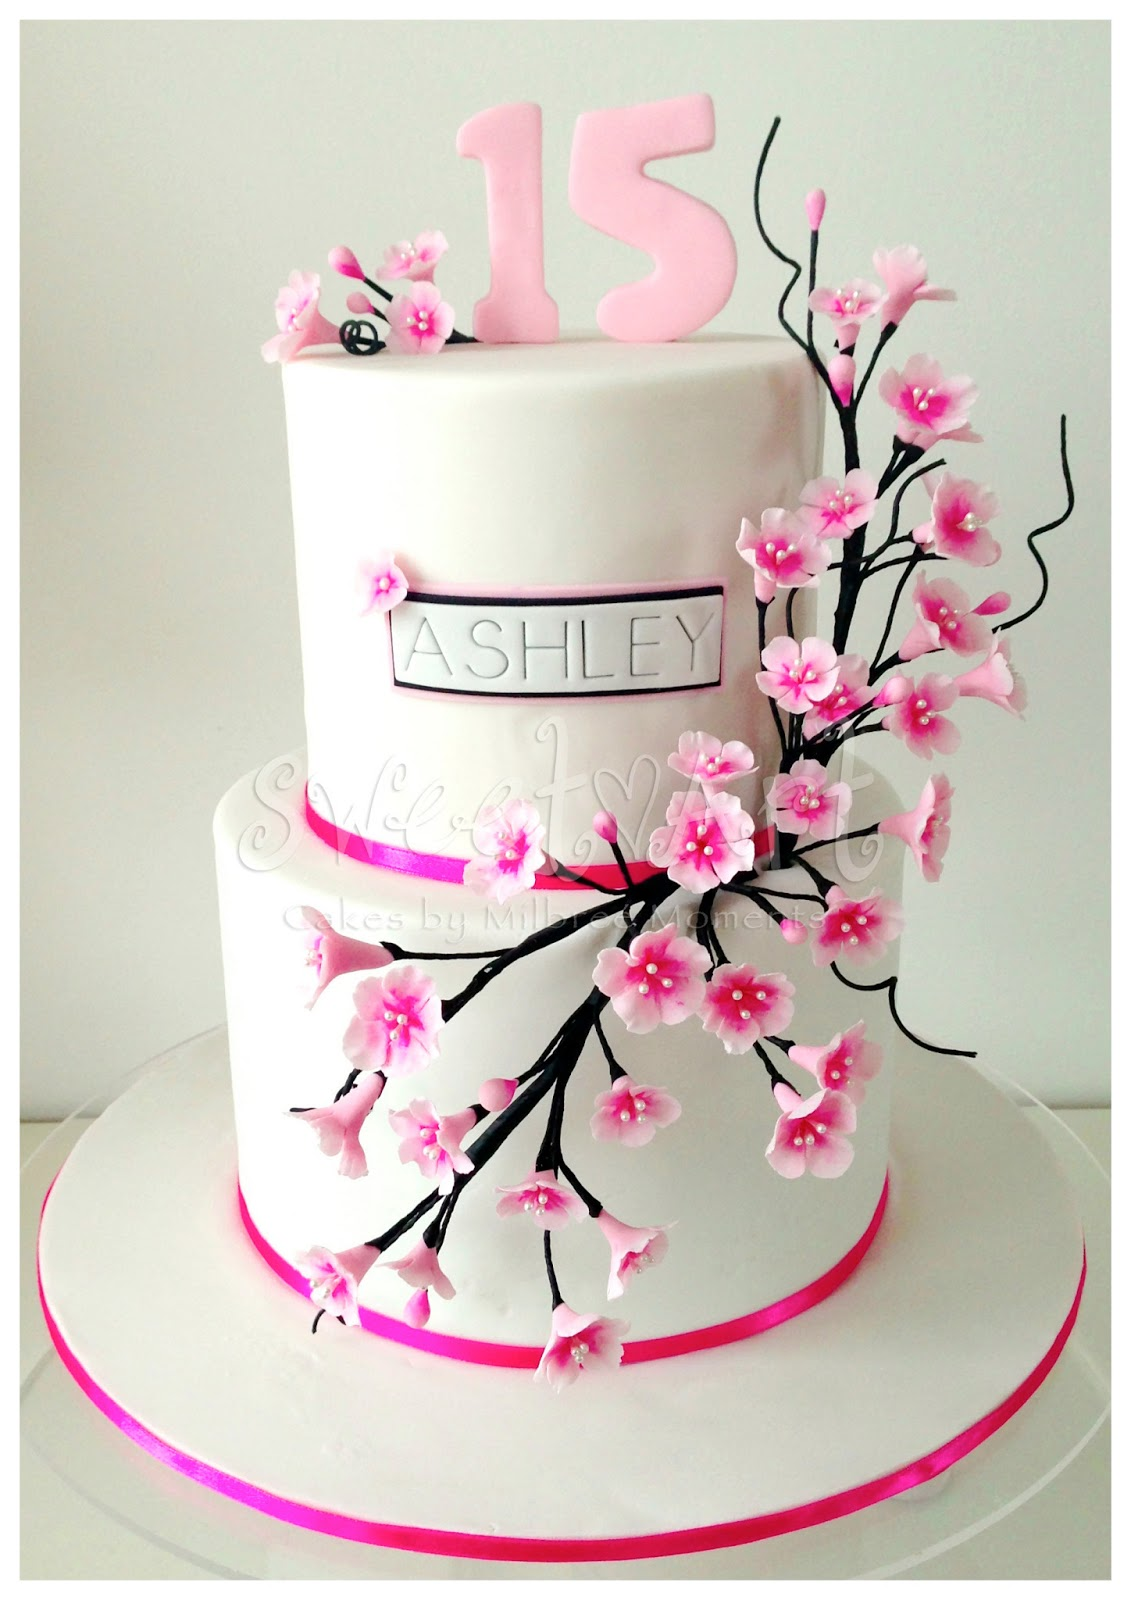 Sweet Art Cake Design Nz : Sweet Art Cakes by Milbree Moments: Ashley s Cherry ...